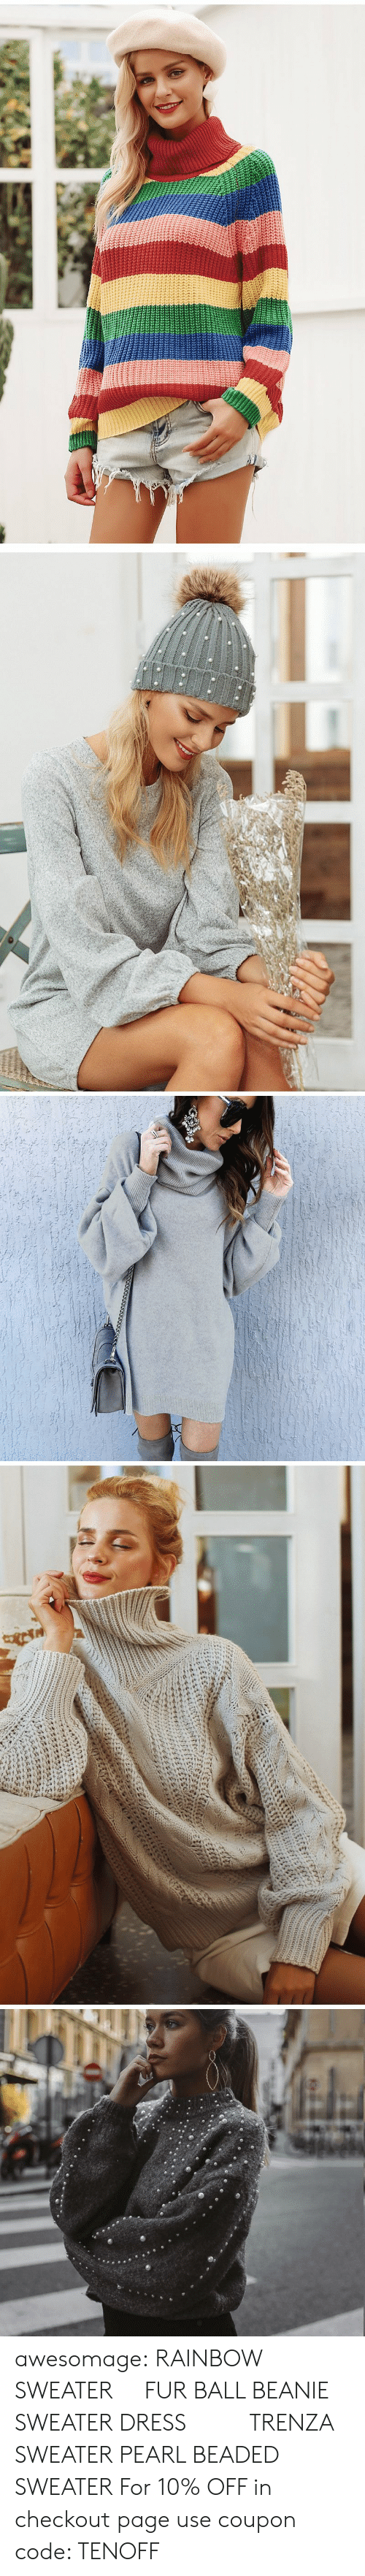 sweaters: awesomage:  RAINBOW SWEATER   FUR BALL BEANIE  SWEATER DRESS     TRENZA SWEATER  PEARL BEADED SWEATER  For 10% OFF in checkout page use coupon code: TENOFF